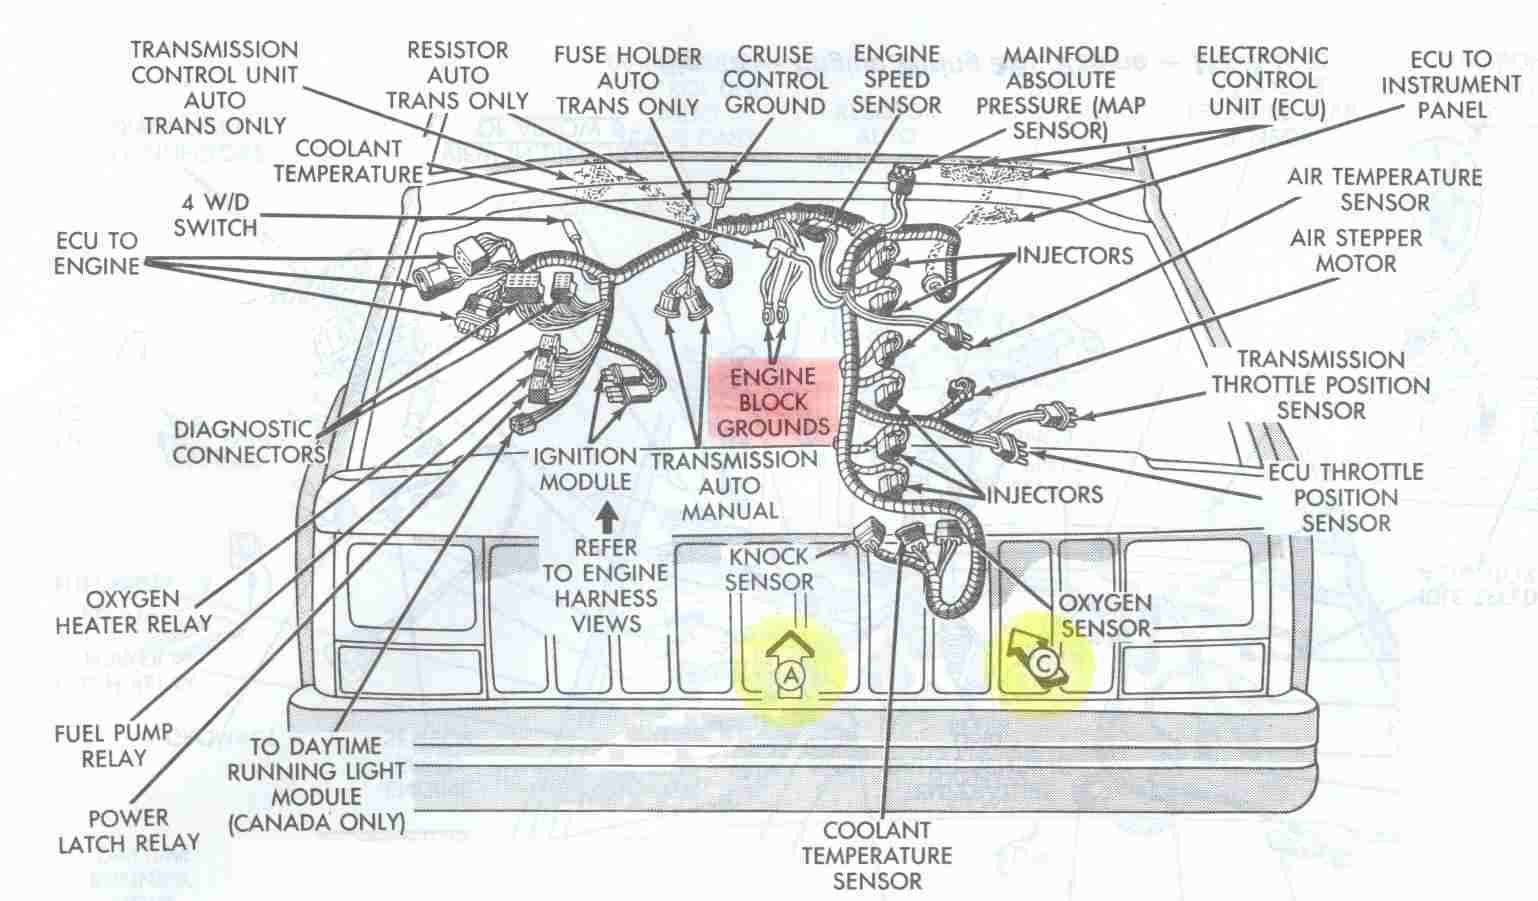 Radio Wiring Diagram For 2000 Jeep Grand Cherokee Laredo Save Wiring likewise 2000 Jeep Grand Cherokee Ignition Wiring Diagram Inspirationa Jeep additionally 2000 Jeep Grand Cherokee Wiring Diagram   Fantastic Wiring Diagram further  in addition 47 New 97 Wrangler Fuse Diagram   createinteractions likewise 2000 Jeep Grand Cherokee Interior Fuse Box Diagram   Explore in addition Wiring Diagram For 2000 Jeep Grand Cherokee   wiring diagram for a also 99 Jeep Grand Cherokee Under Hood Fuse Box  Jeep  Auto Wiring also  besides 2000 jeep grand cherokee limited fuse box diagram 1996 wiring showy in addition Wiring Diagram 2000 Jeep Grand Cherokee Limited Fresh Radio Wiring besides 2003 Jeep Grand Cherokee Interior Fuse Panel Diagram   Wiring Diagram as well 2000 jeep grand cherokee laredo fuse box diagram – easela club in addition Jeep Xj Engine Diagram   Wiring Diagrams together with  further 2000 Jeep Grand Cherokee Sport Fuse Box Diagram Forum Wiring Canon. on 2000 jeep grand cherokee limited fuse diagram